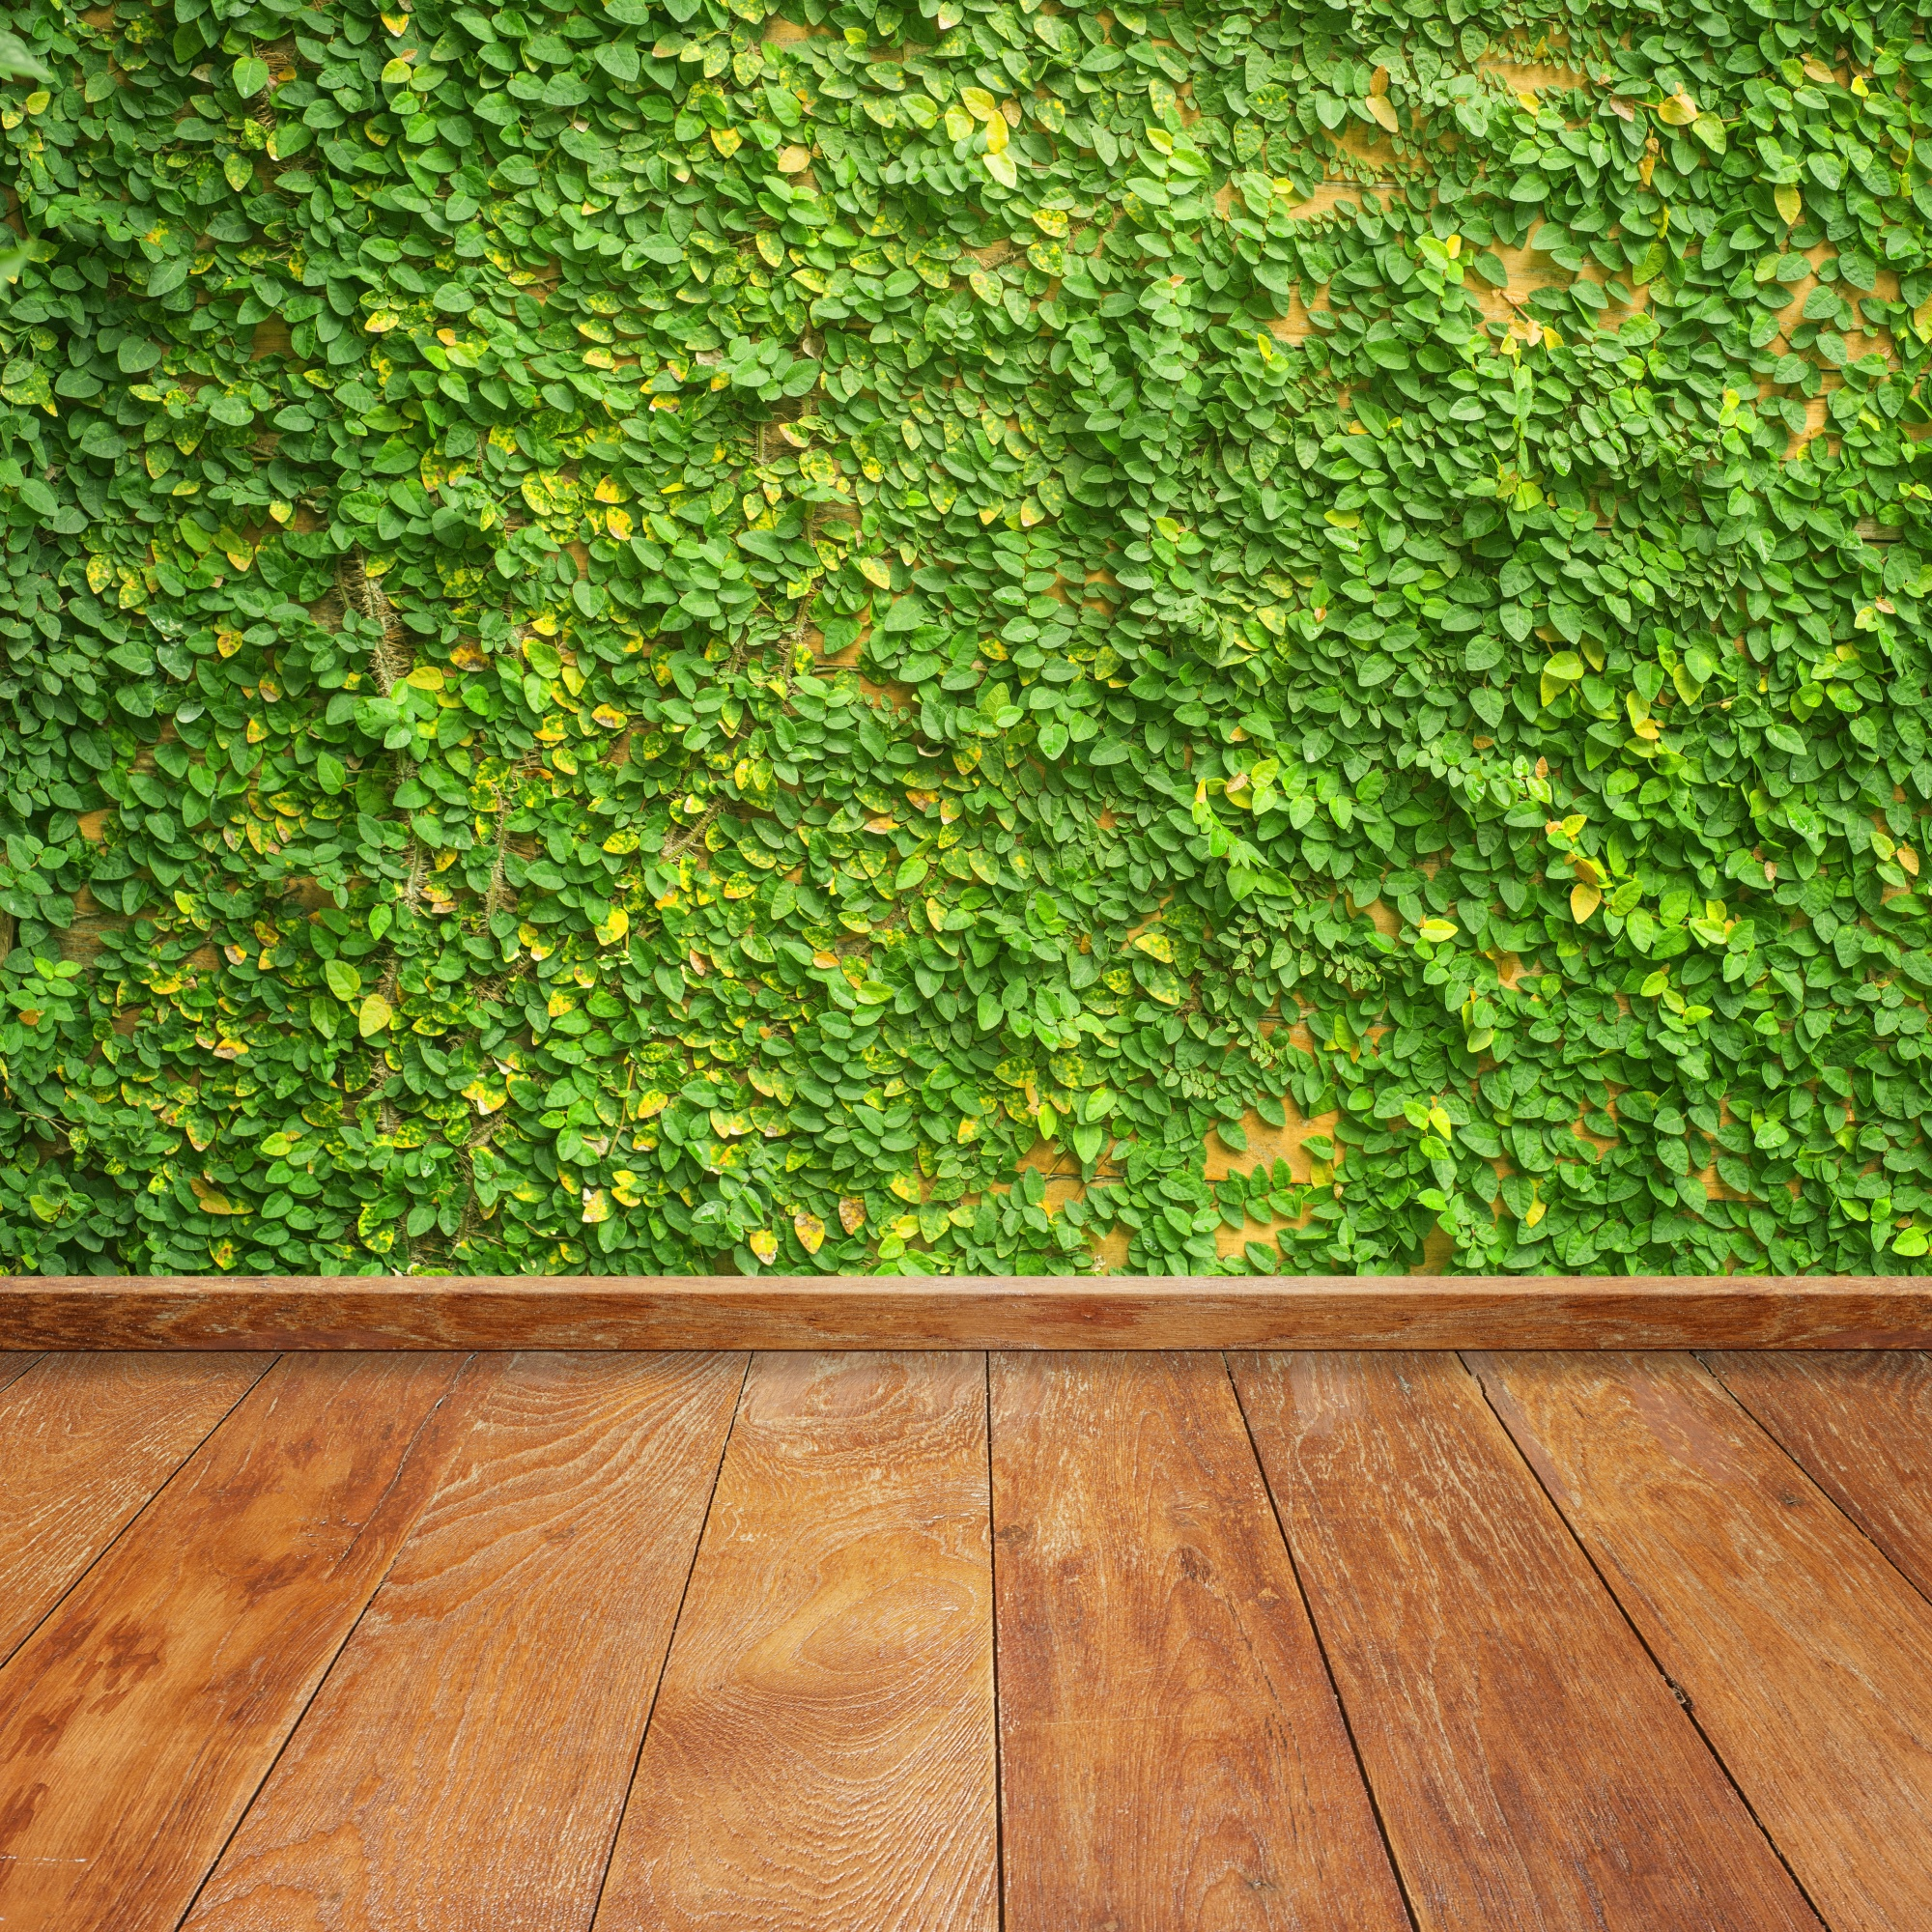 Wooden boards with a vine on the wall